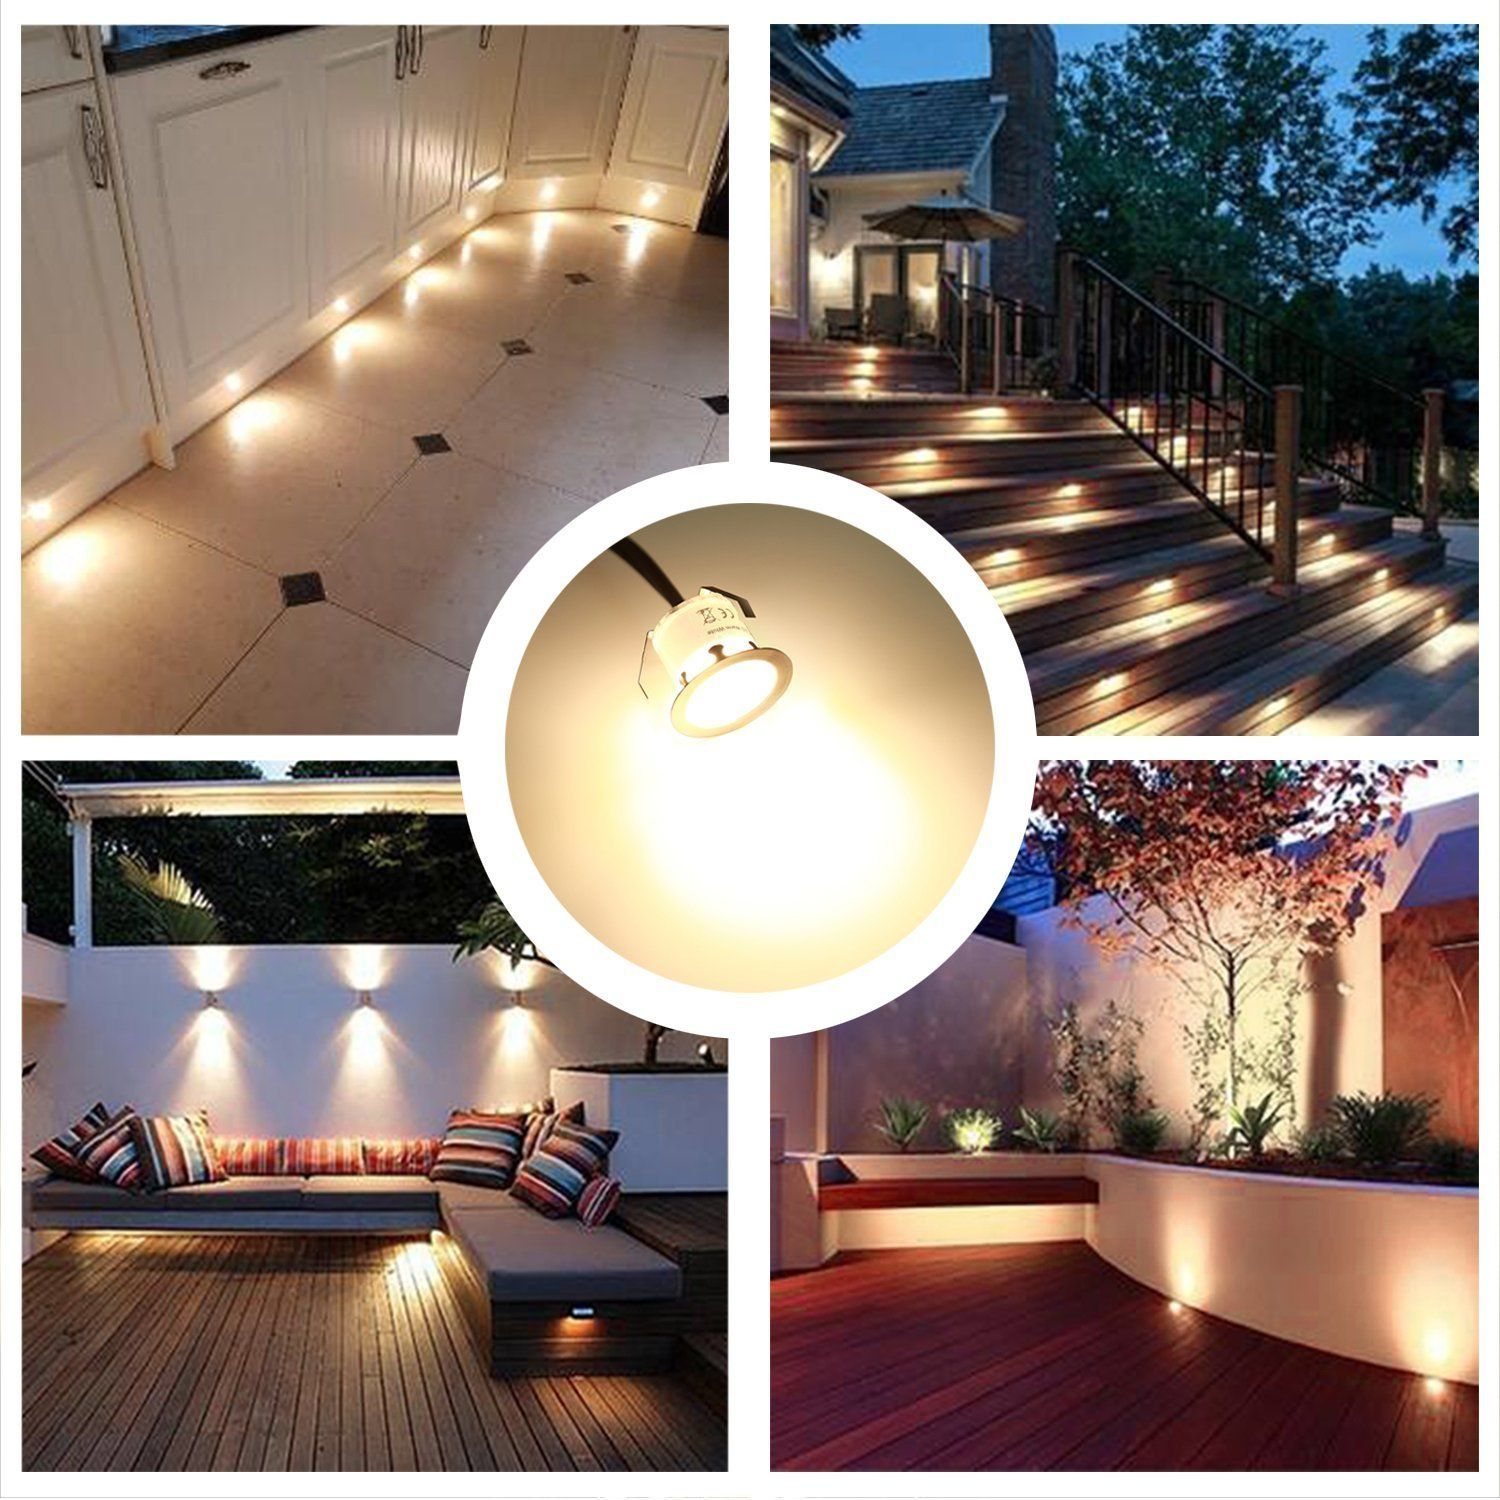 Recessed Led Deck Lighting Kits 12v Low Voltage Warm White X3c6 22mm Waterproof Ip 67 Led In Ground L Outdoor Lighting Kit Deck Lighting Led Outdoor Lighting